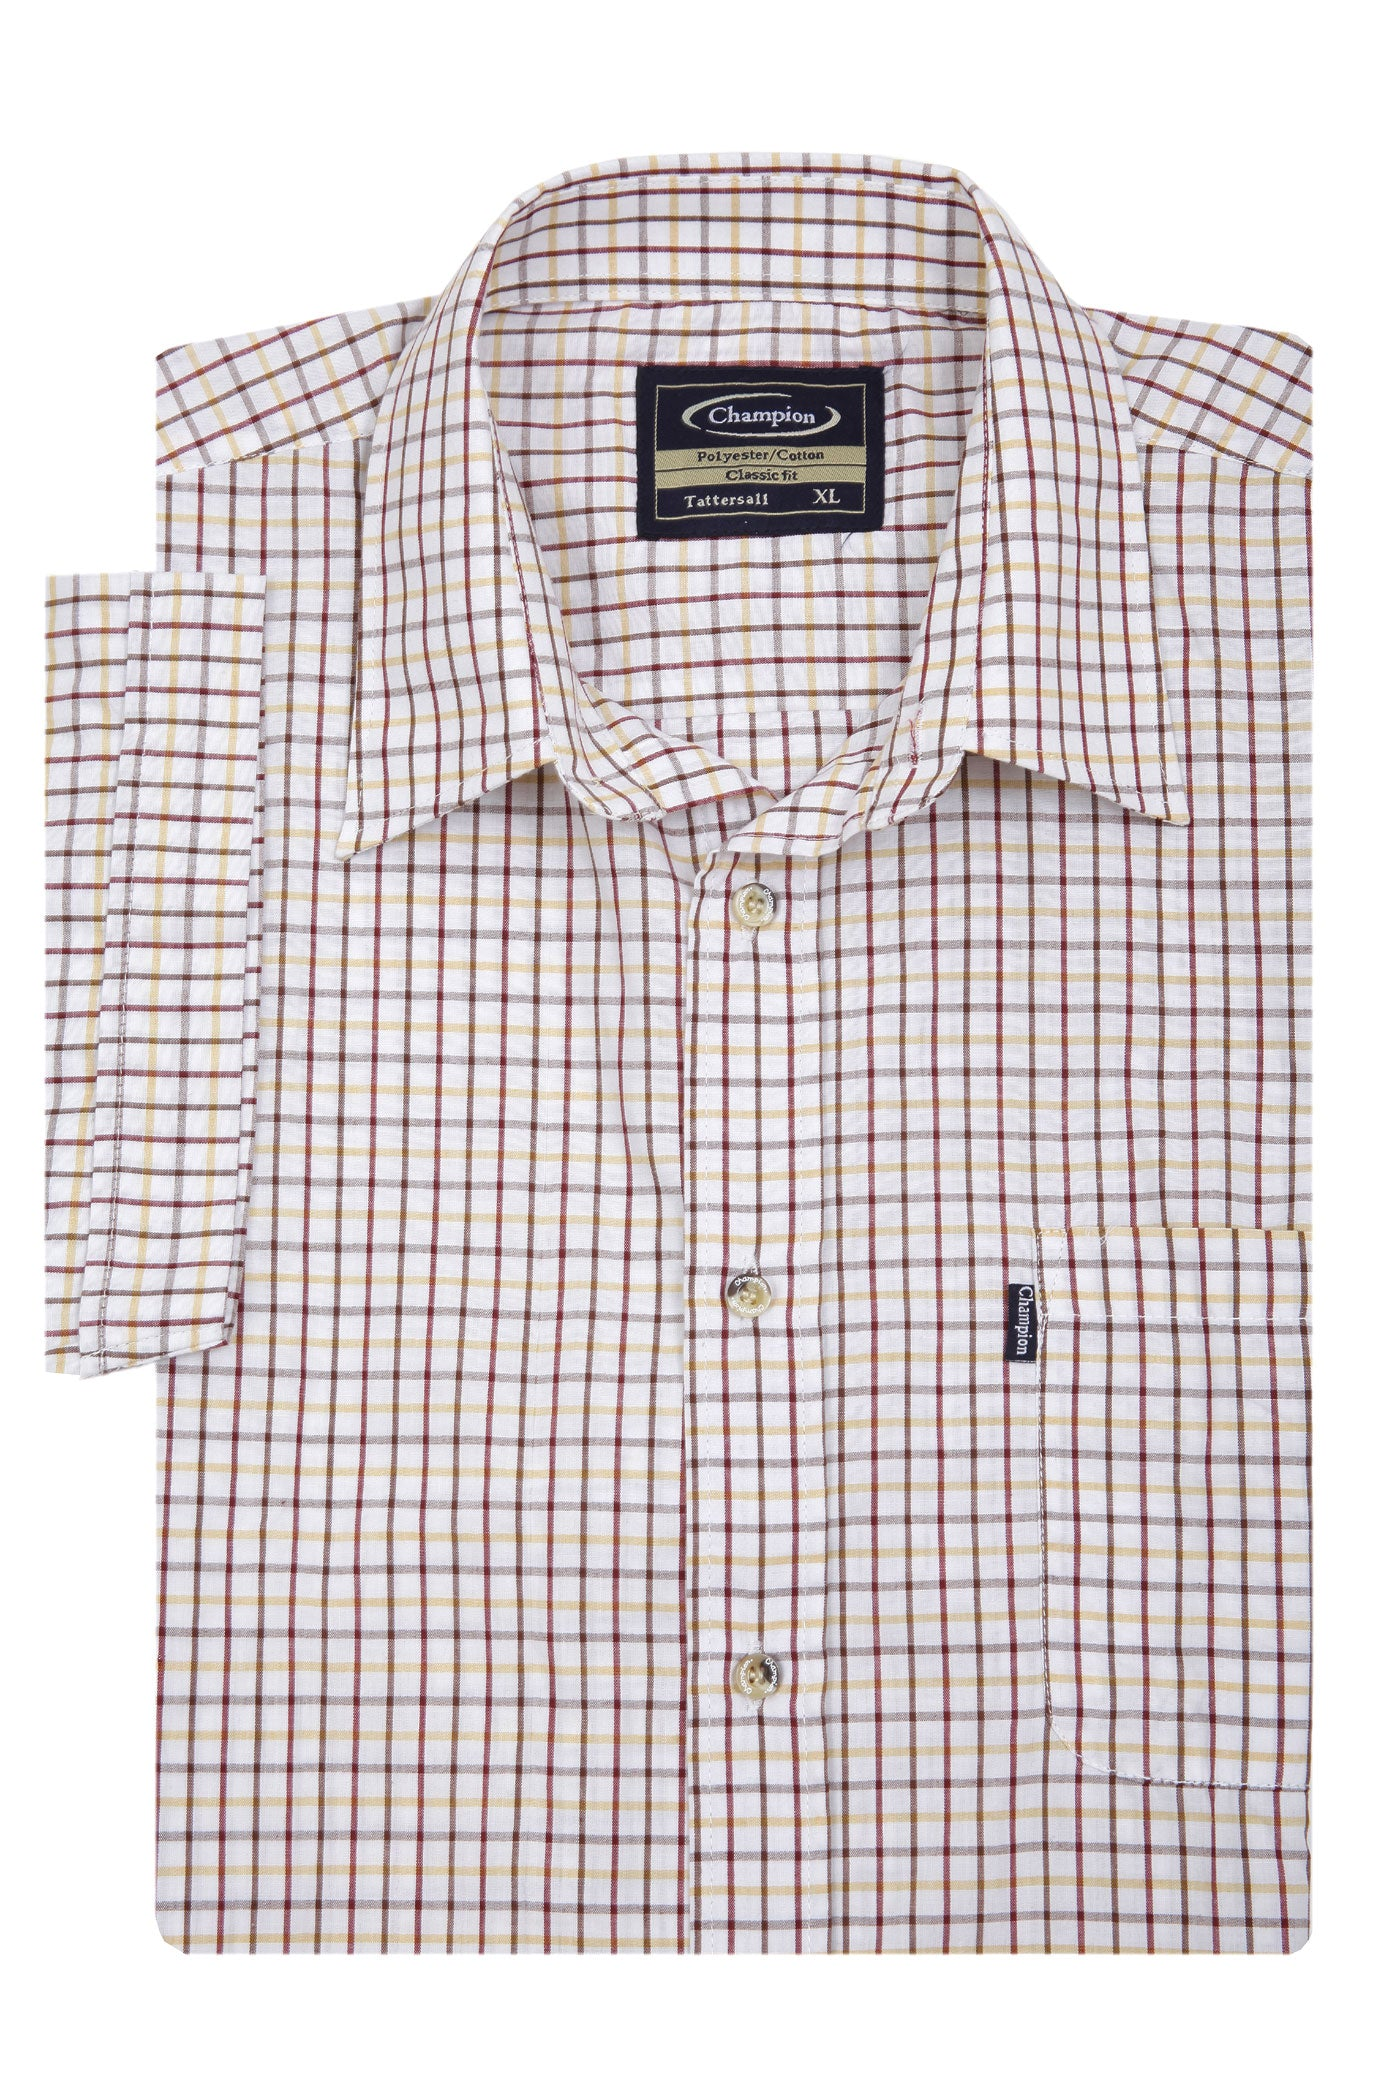 size XXL Champion summer Tattersall, the classic country tattersall check shirt with short sleeves, ideal for summer